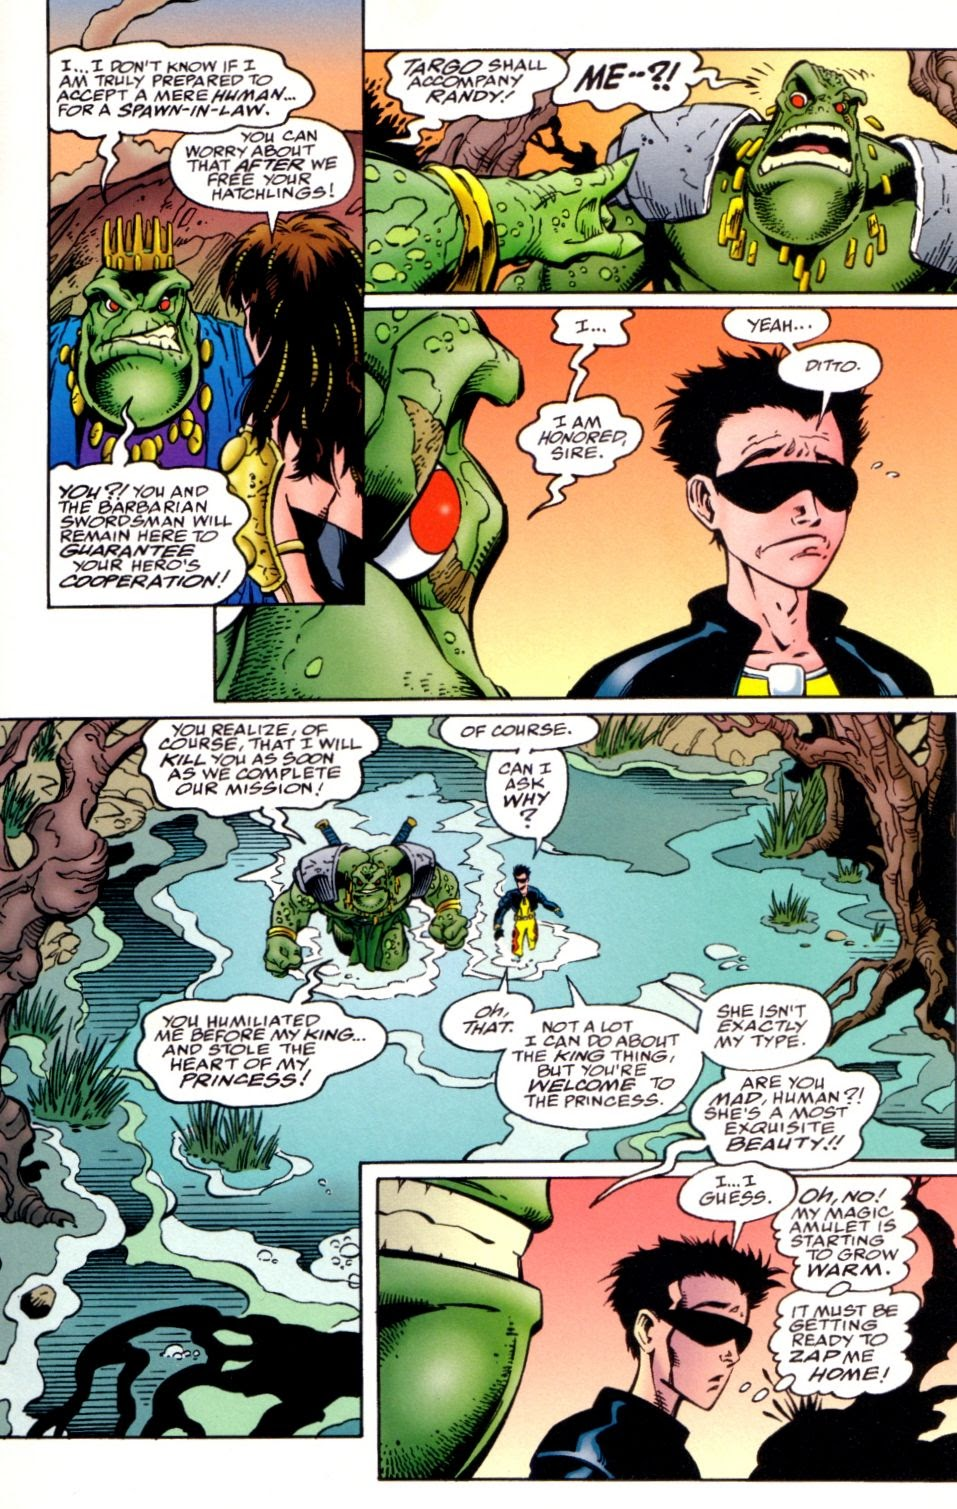 Read online Randy O'Donnell is The M@N comic -  Issue #3 - 15